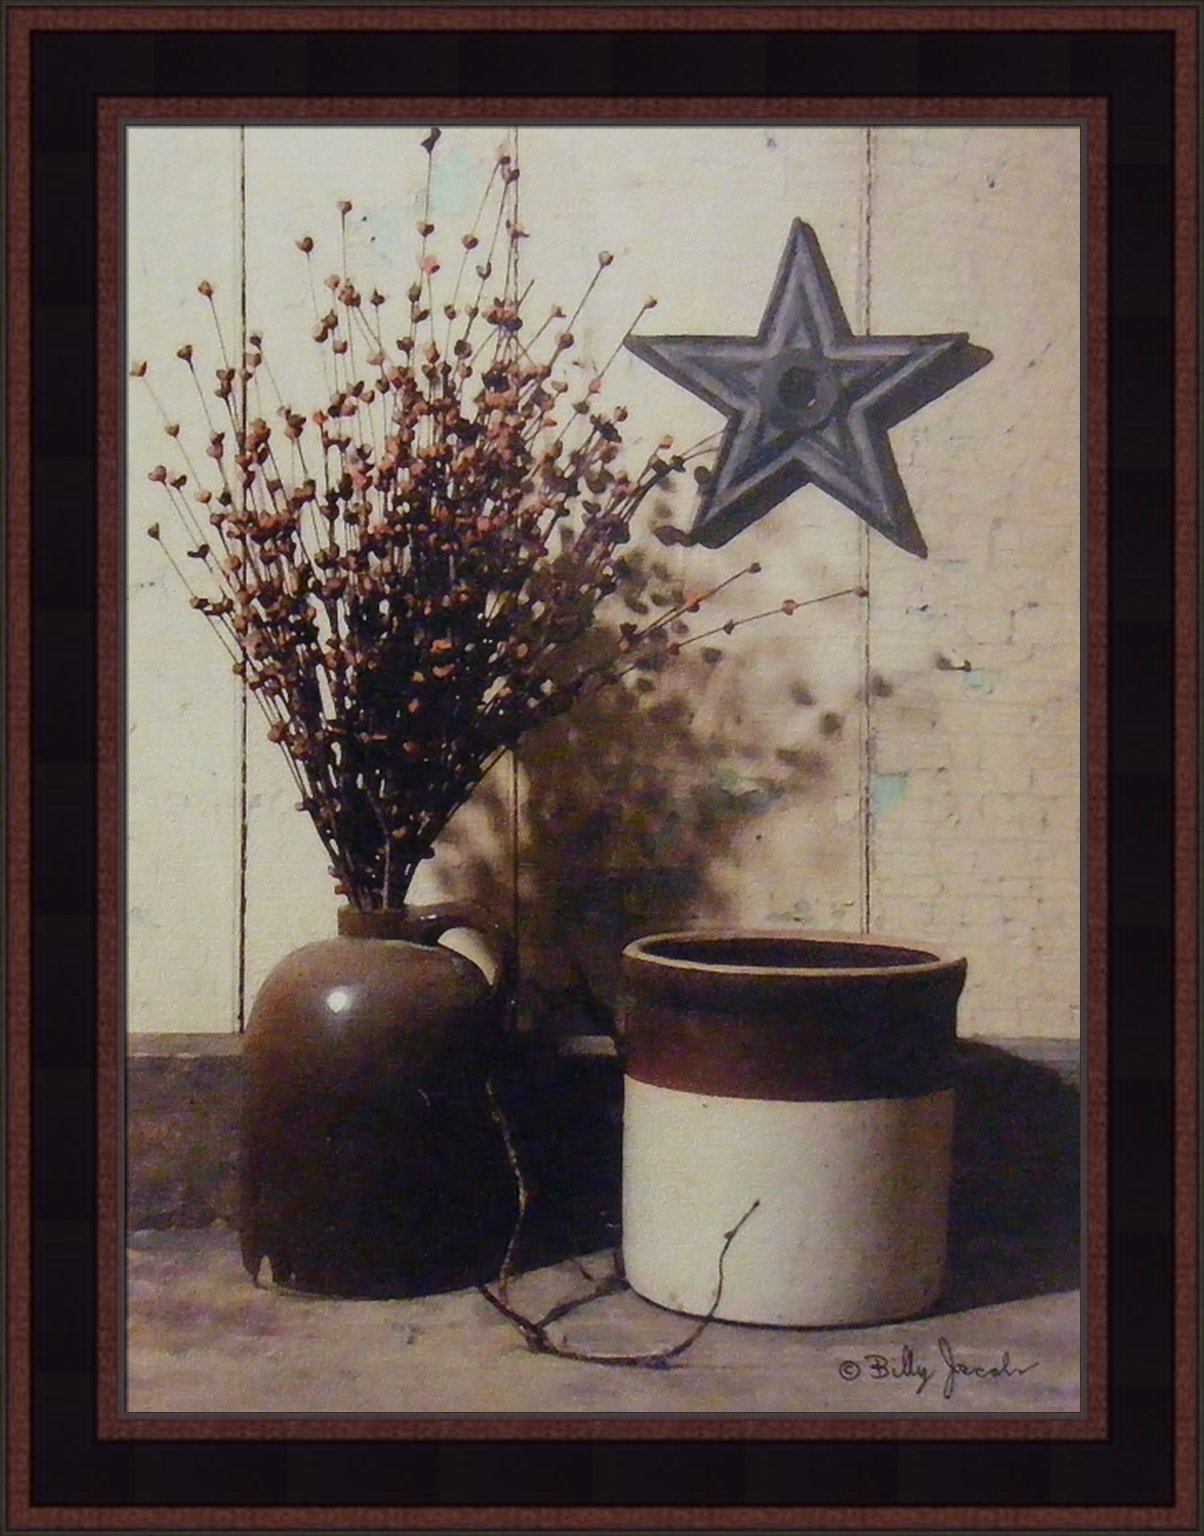 Crocks and Star by Billy Jacobs 15x19 Antique Jug Still Life Country Primitive Folk Art Print Wall Décor Framed Picture